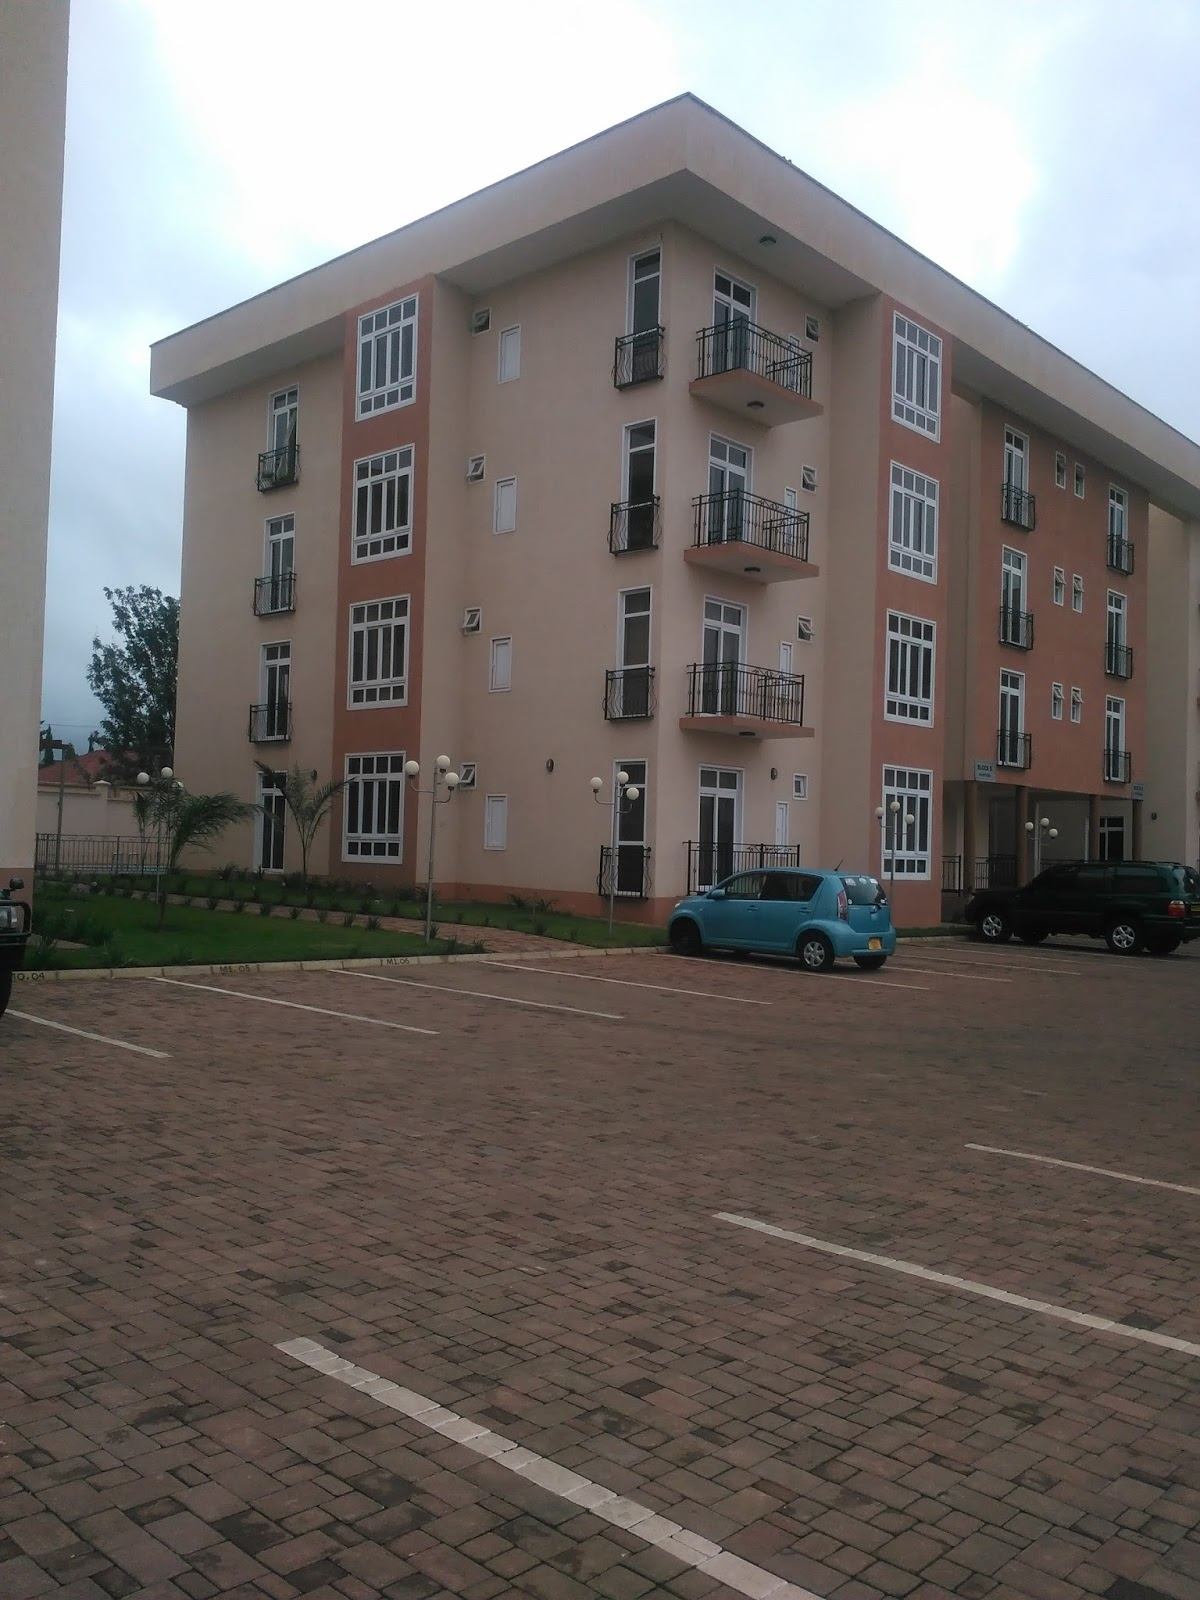 Attractive The Apartment Compound Has Large Garden And Parking Area. The Apartments  Units For Sale Compound Has Large Standby Generator For Back Up If TANESCO  ...